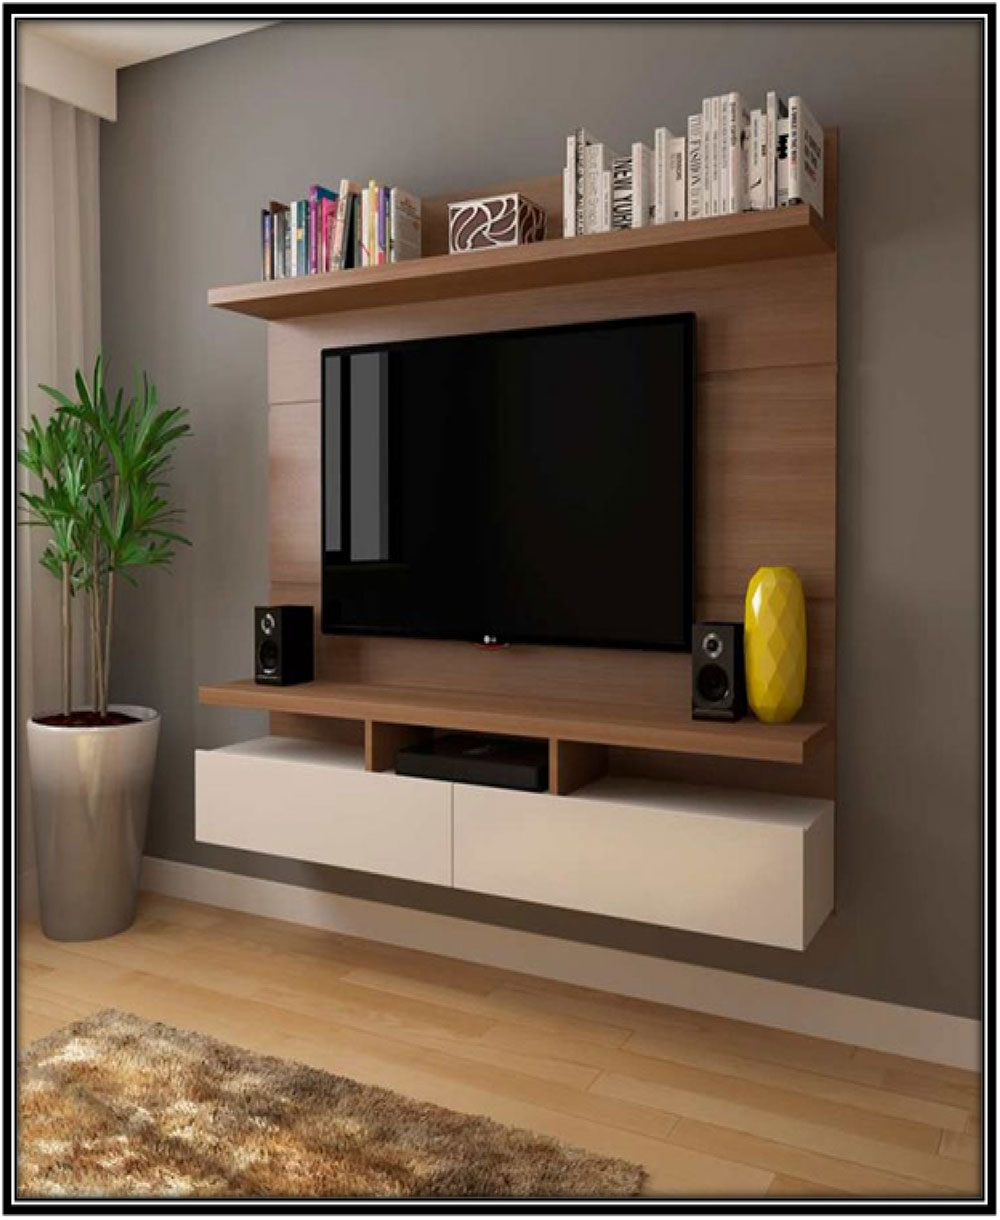 TV corner with slabs and drawers-Home decor ideas